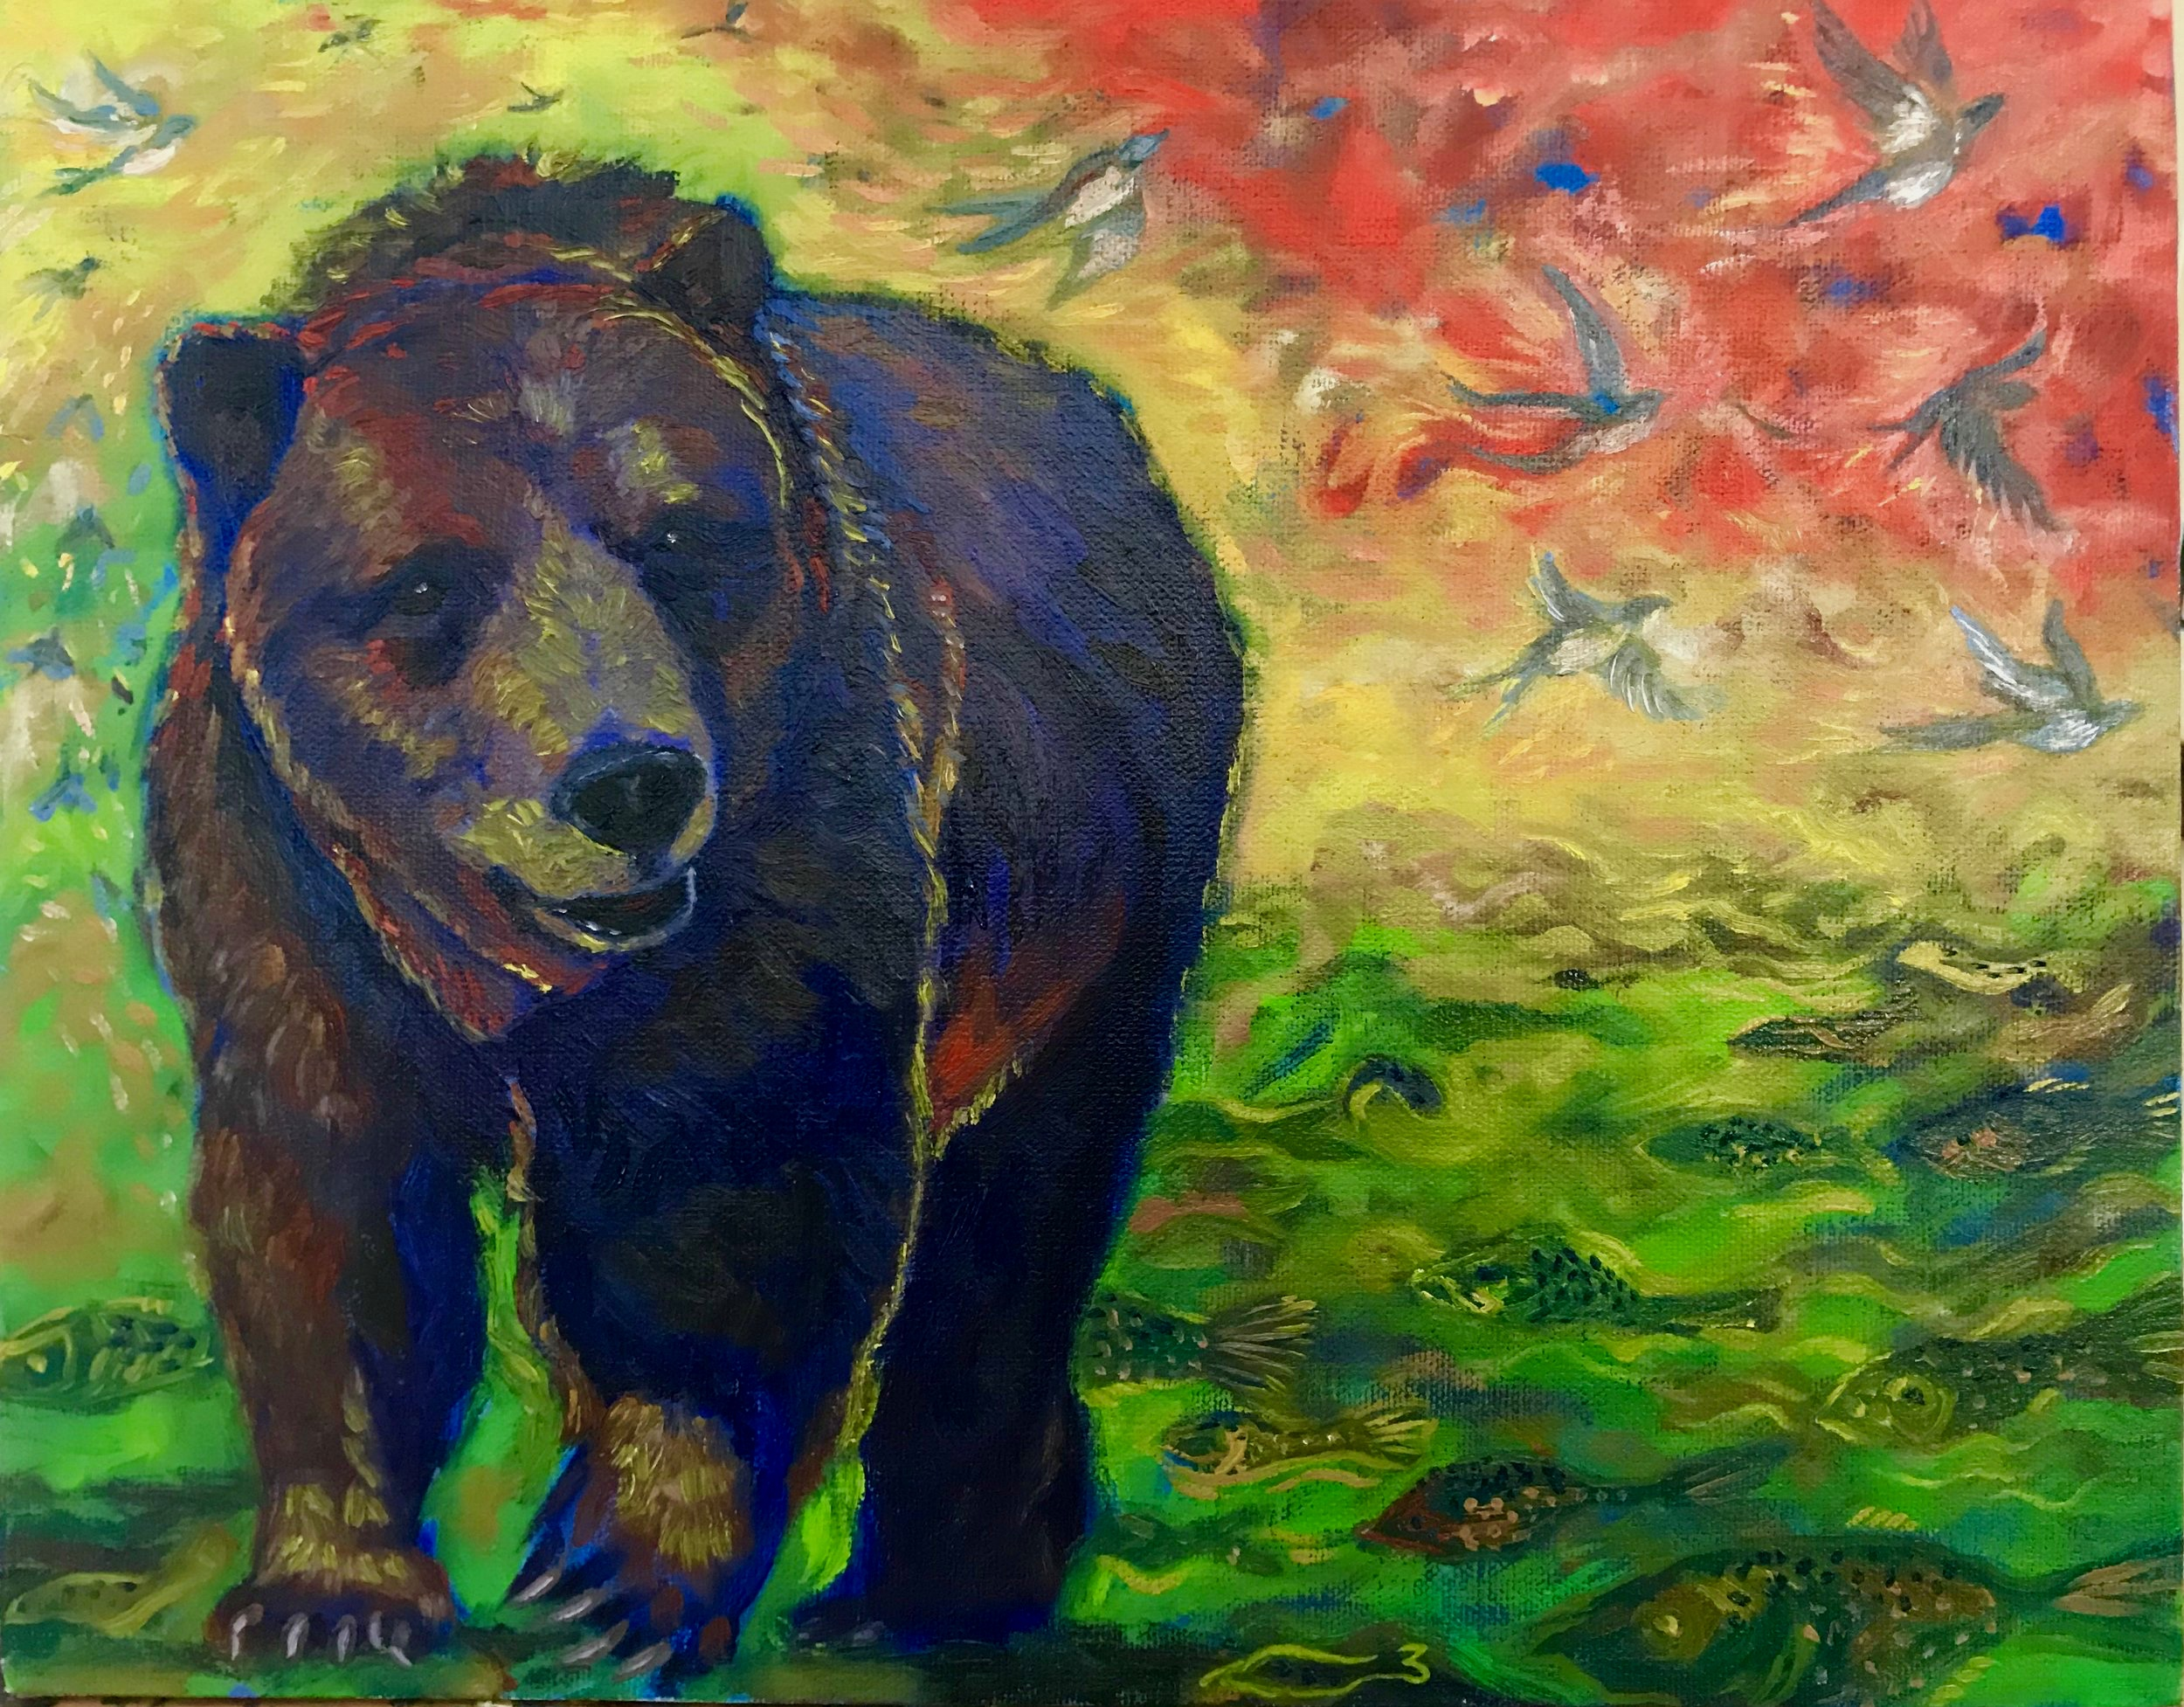 Bear, Birds and Fish